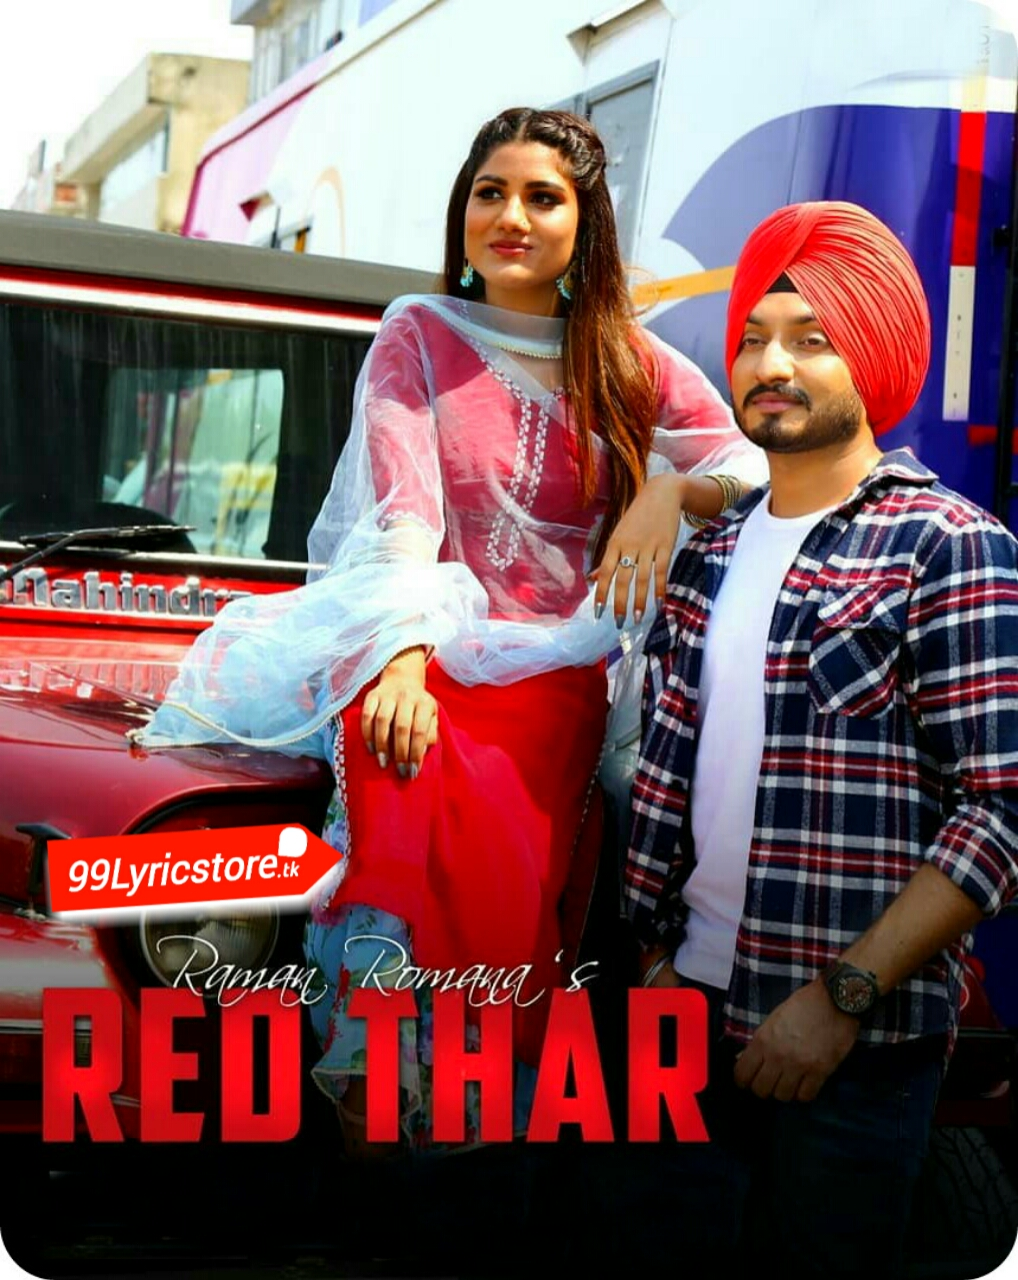 New Punjabi Song Lyrics 2018, RAMAN ROMANA FT Virasat Sandhu Song Lyrics, Virasat Sandhu images, Raman Romana Images, Saga Hits Song Lyrics 2018